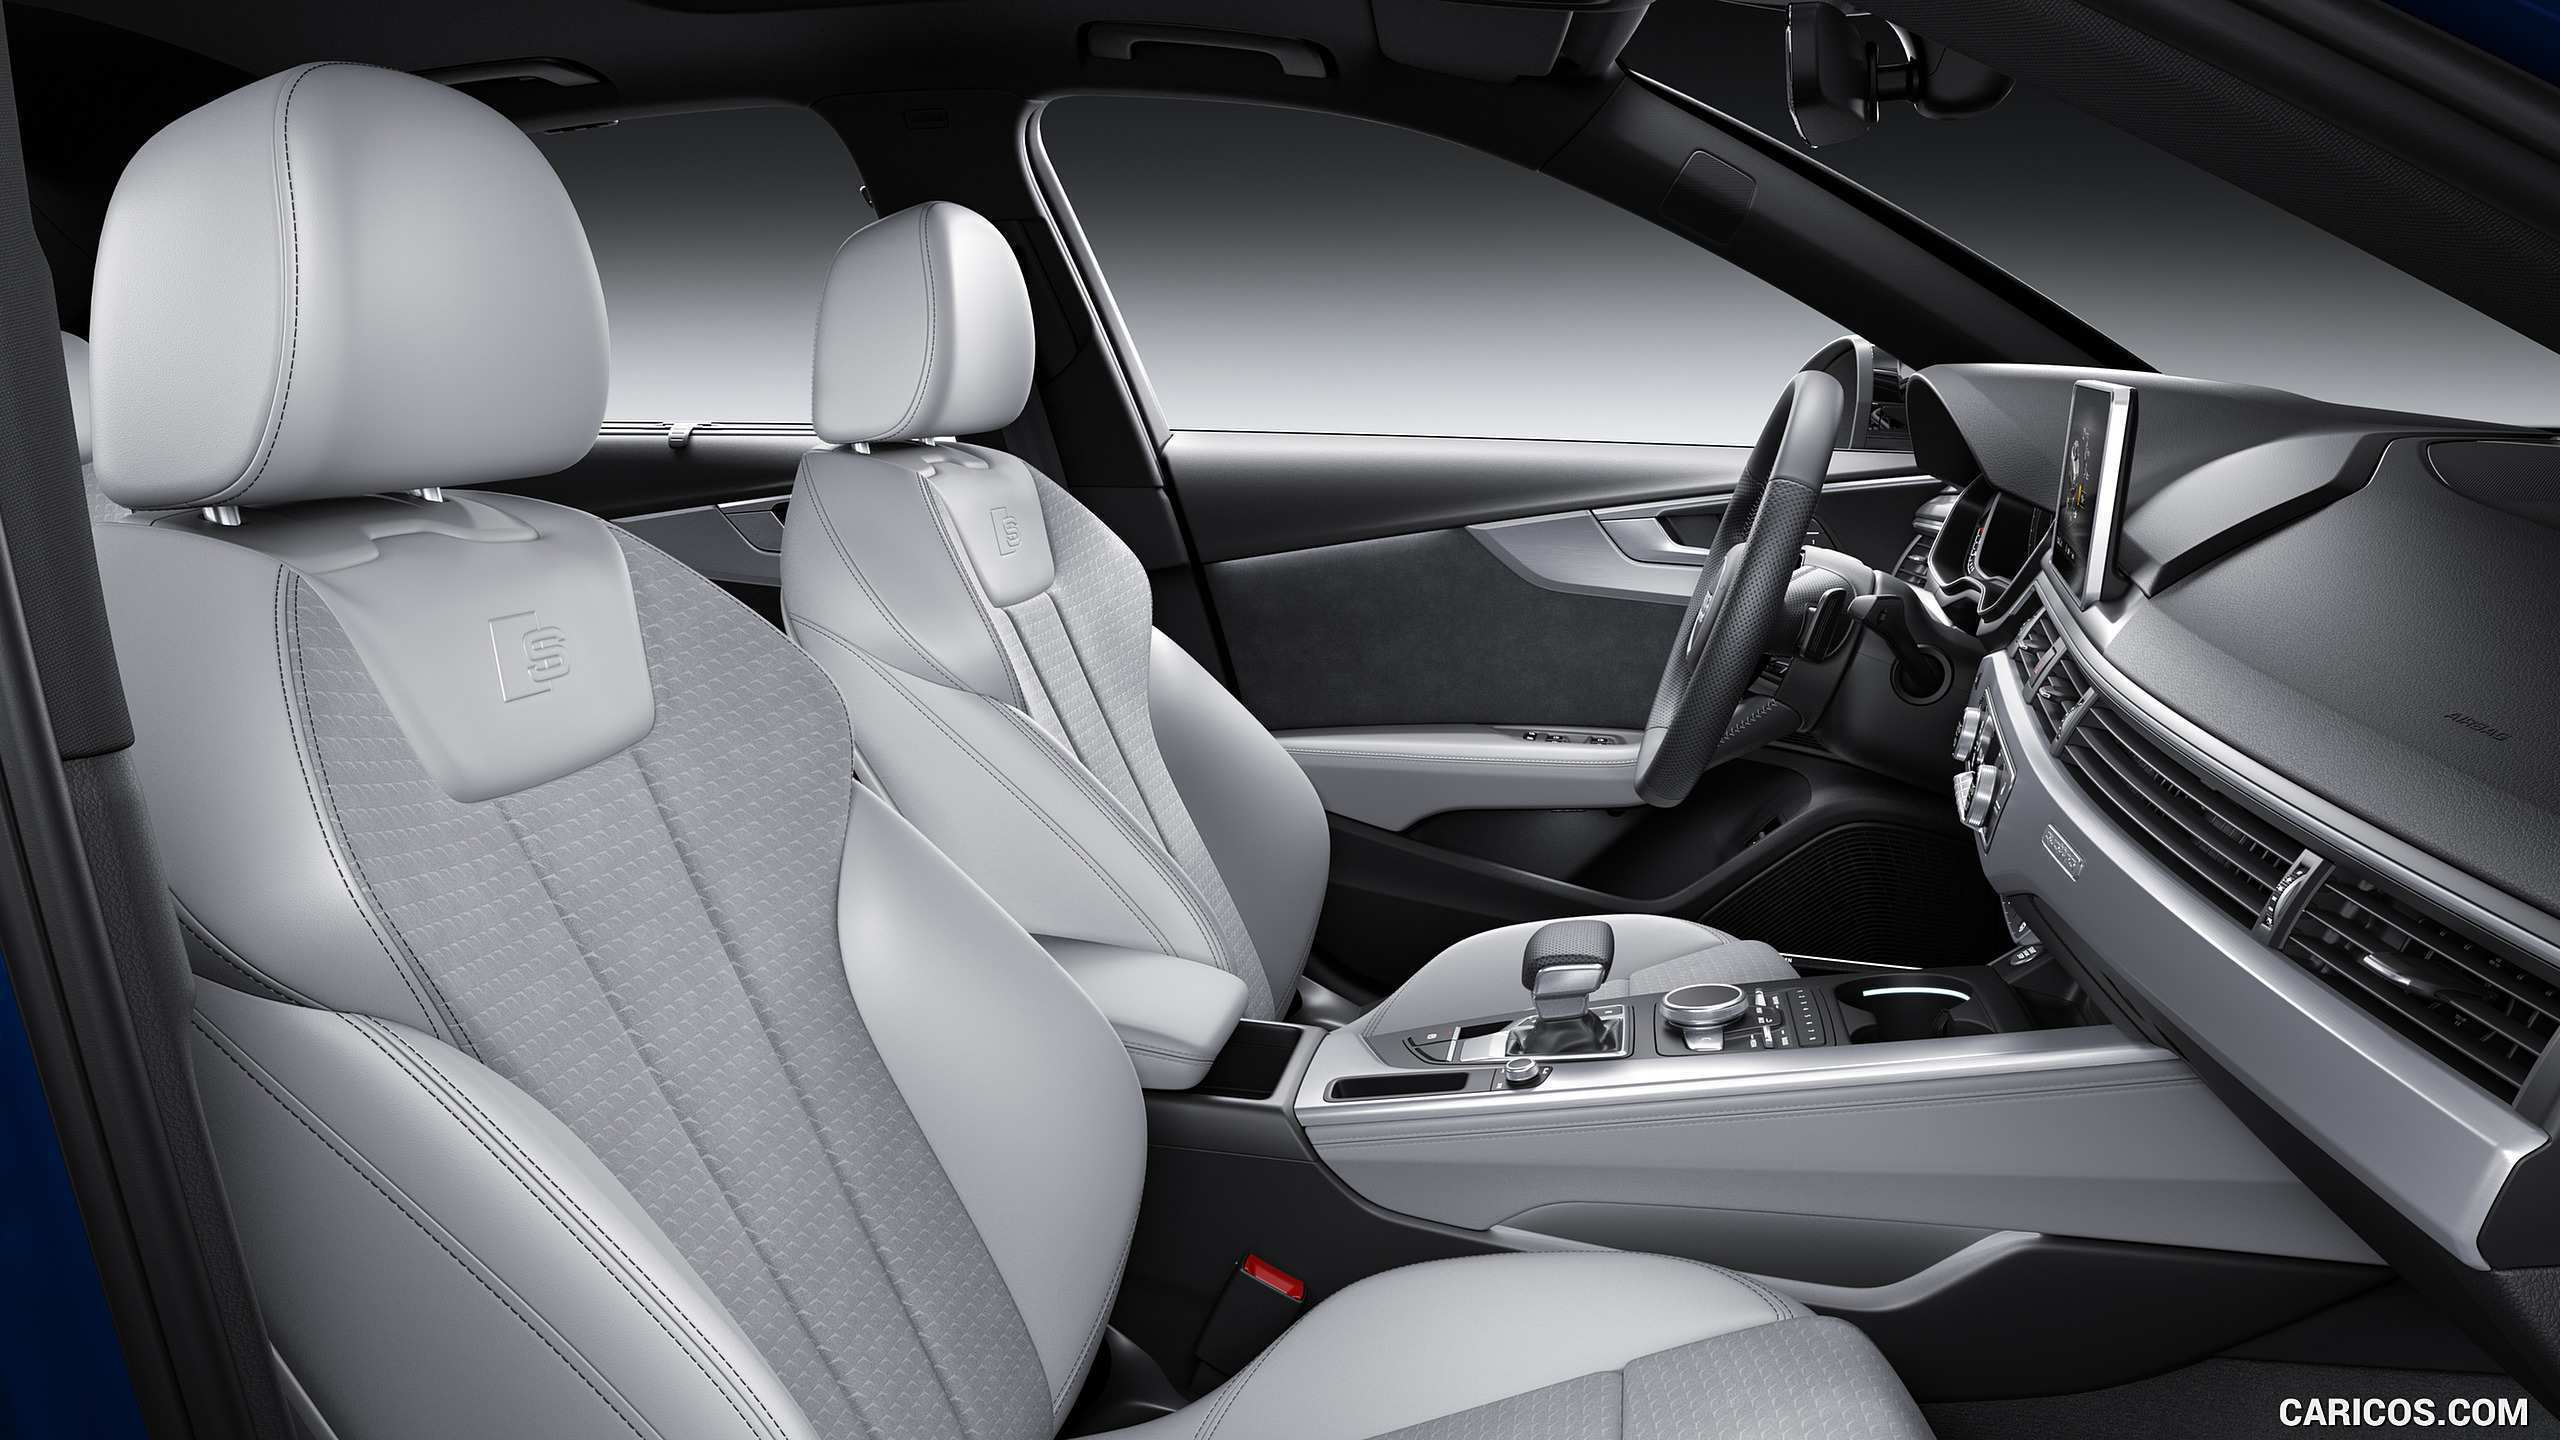 64 All New 2019 Audi A4 Interior Performance by 2019 Audi A4 Interior